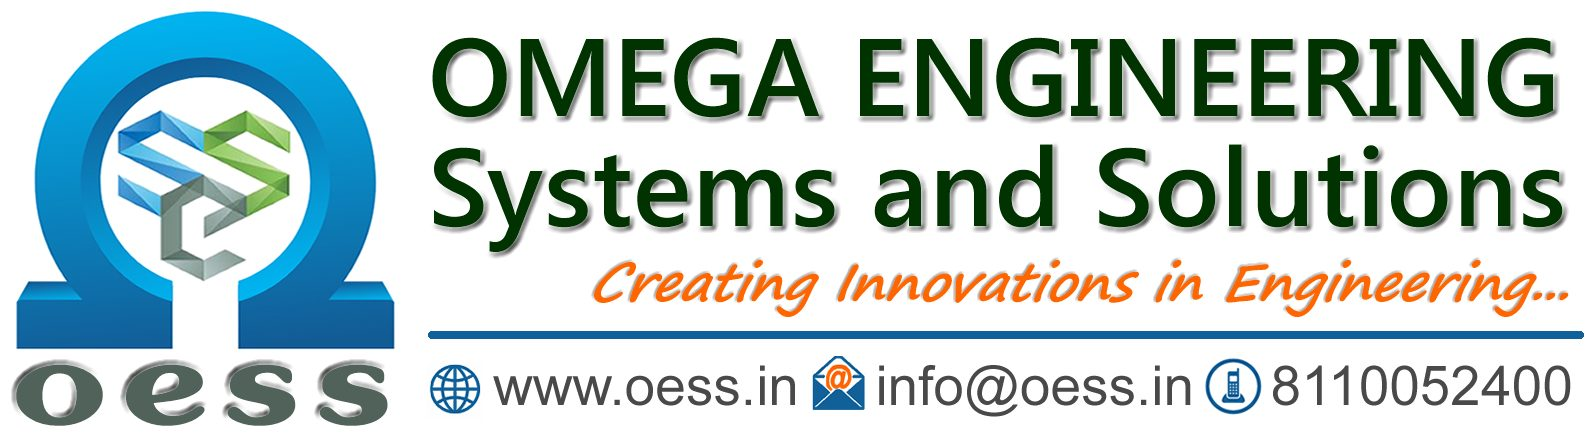 OMEGA Engineering Systems and Solutions